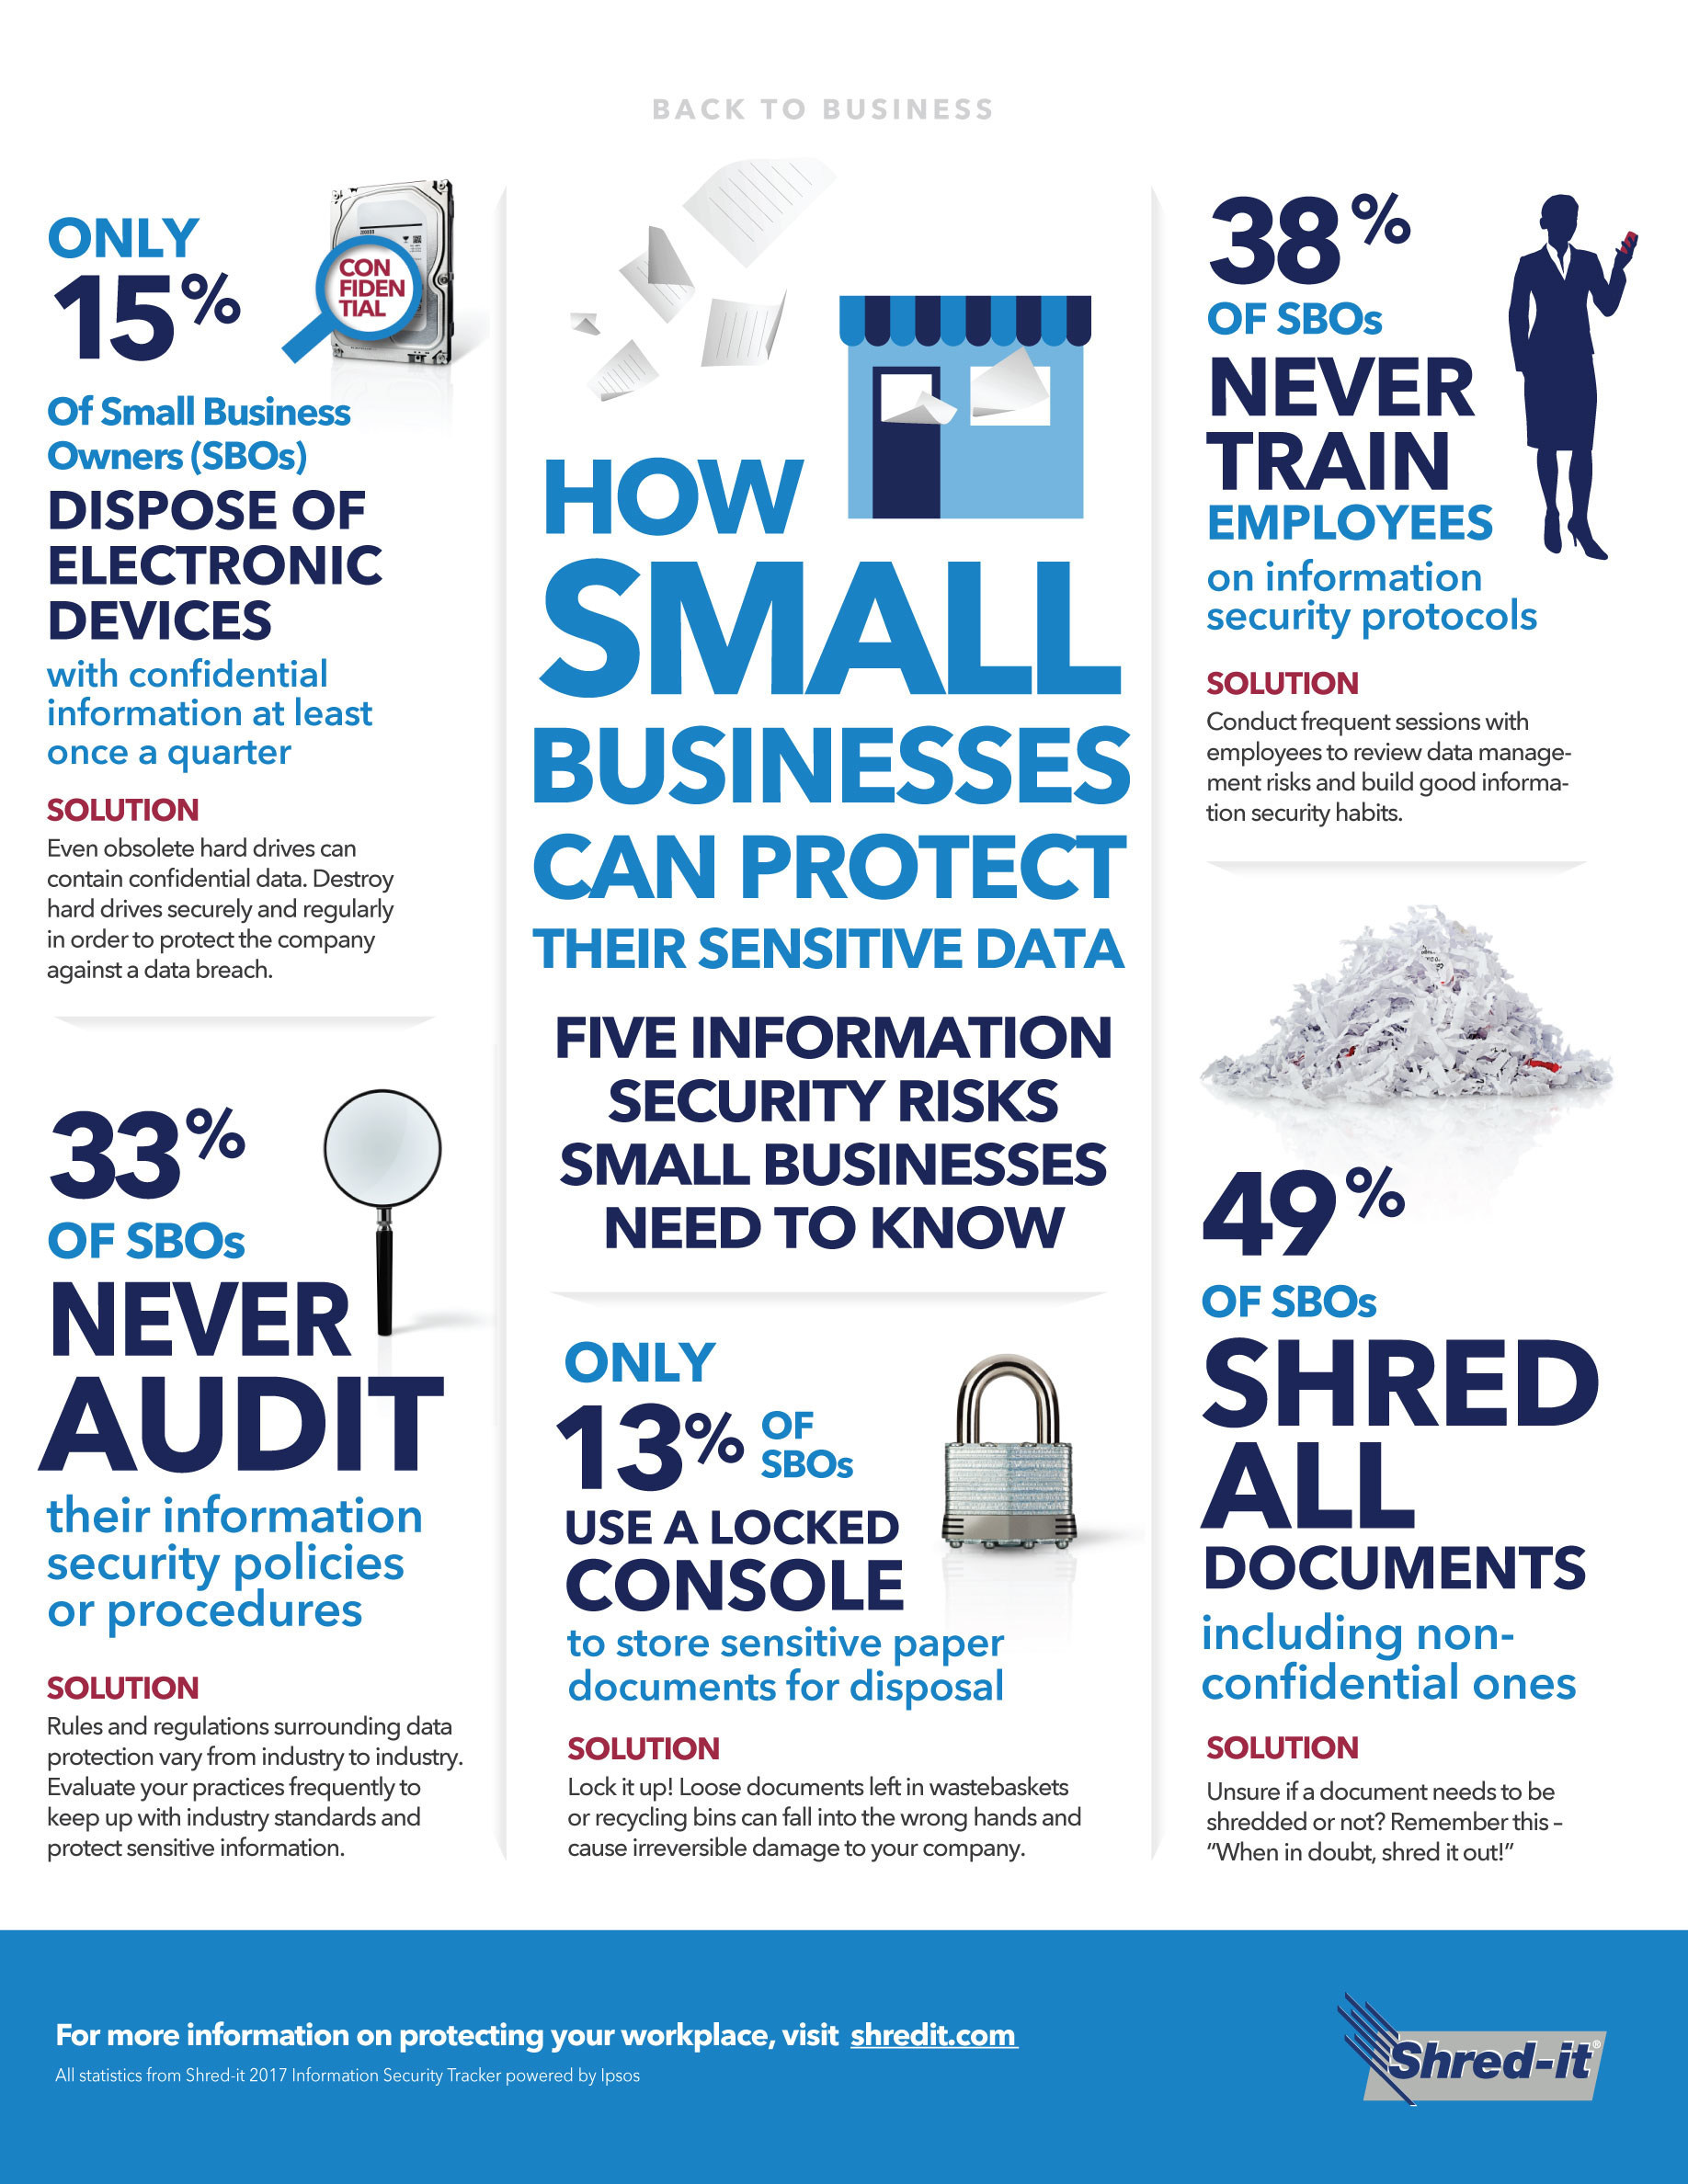 Five Information Security Risks Small Businesses Need to Know (CNW Group/Shred-it)